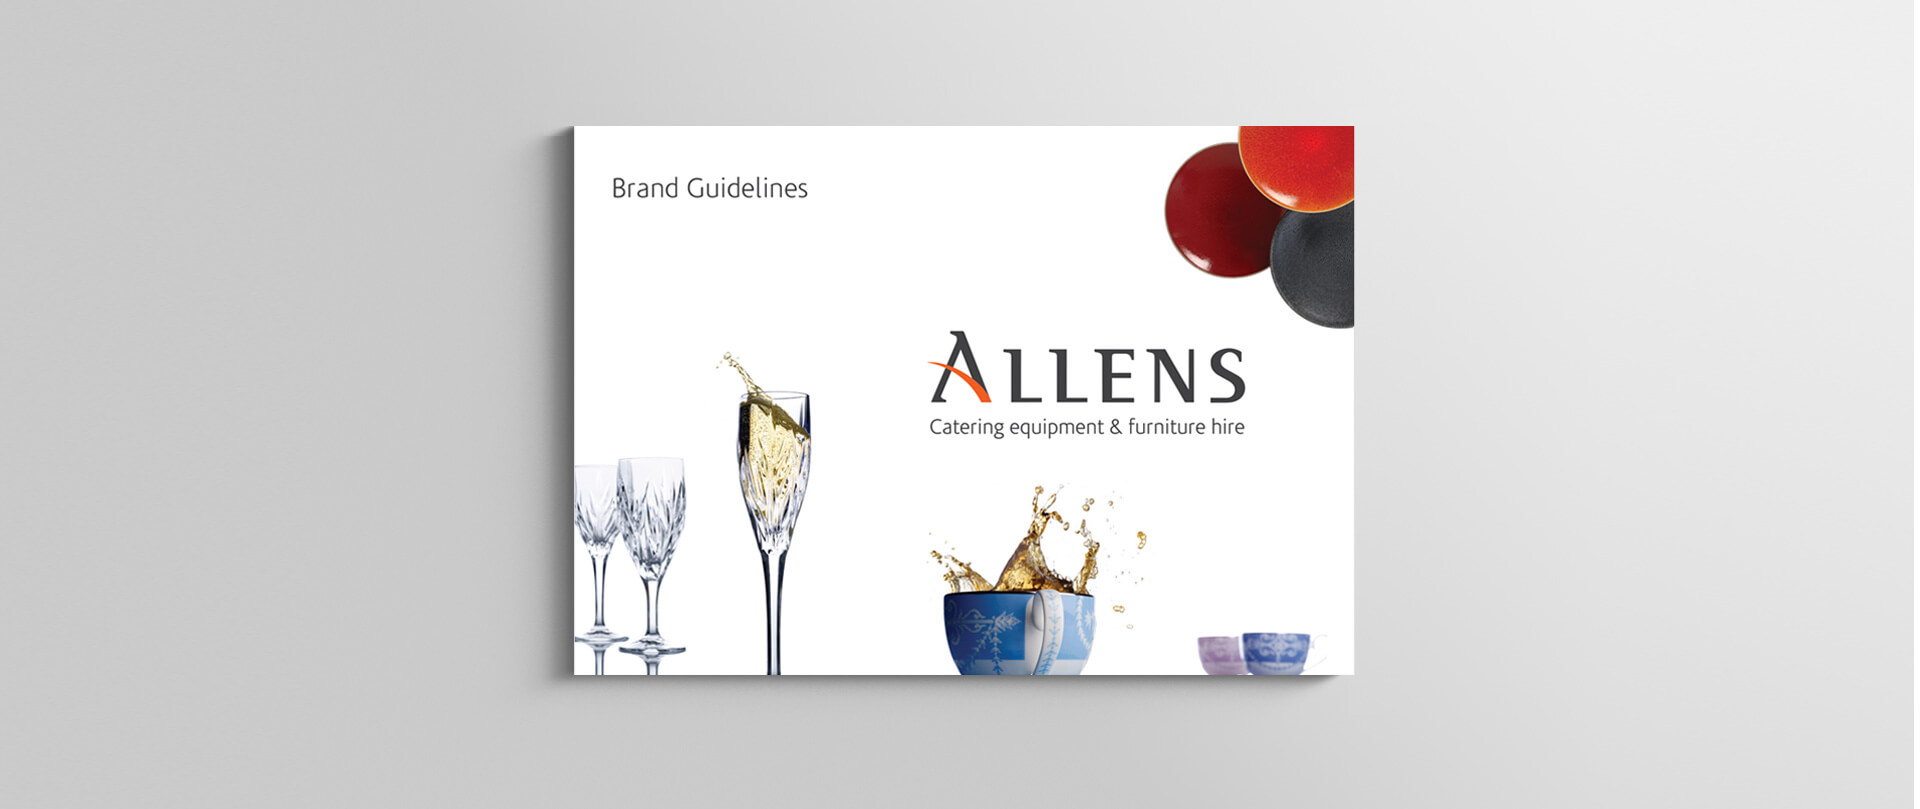 Allens Brand Guidelines